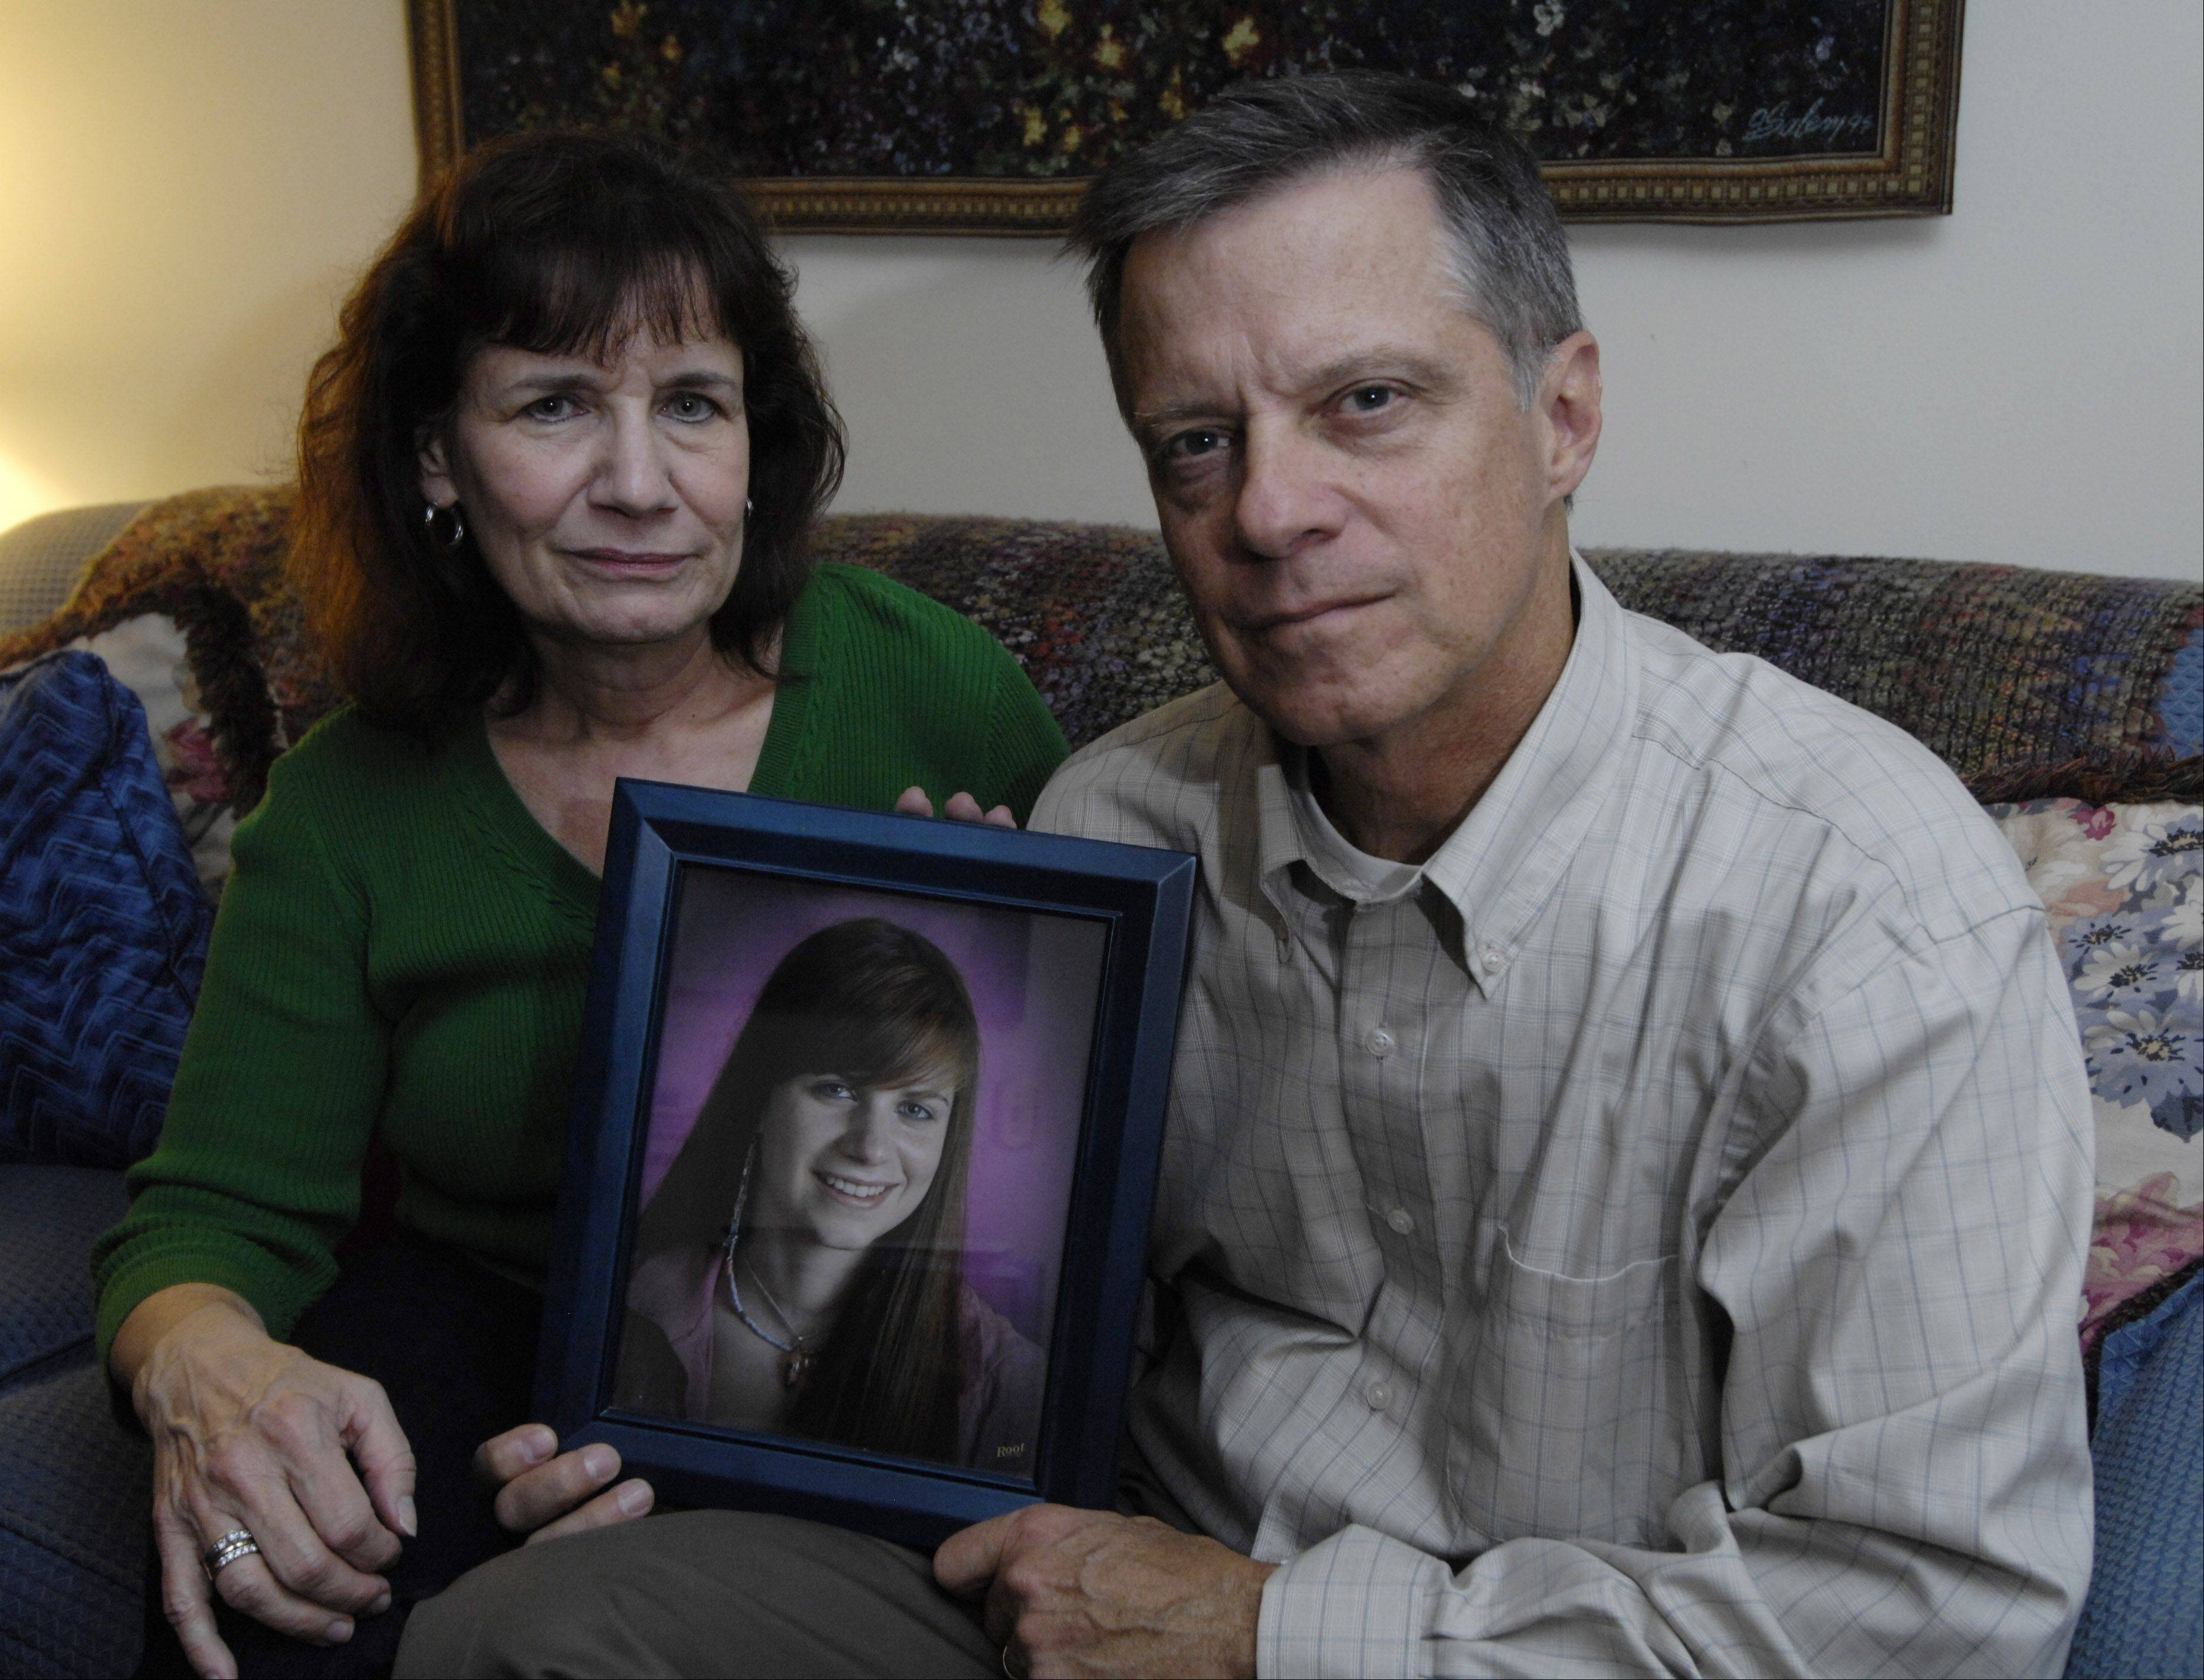 Peter Jackson and his wife, Ellen, of Arlington Heights, hold a picture of their 18-year-old daughter, Emily, who died from complications after taking a prescription OxyContin. Jackson will speak at a rally in Washington D.C. to demand reforms on prescription pain pills.